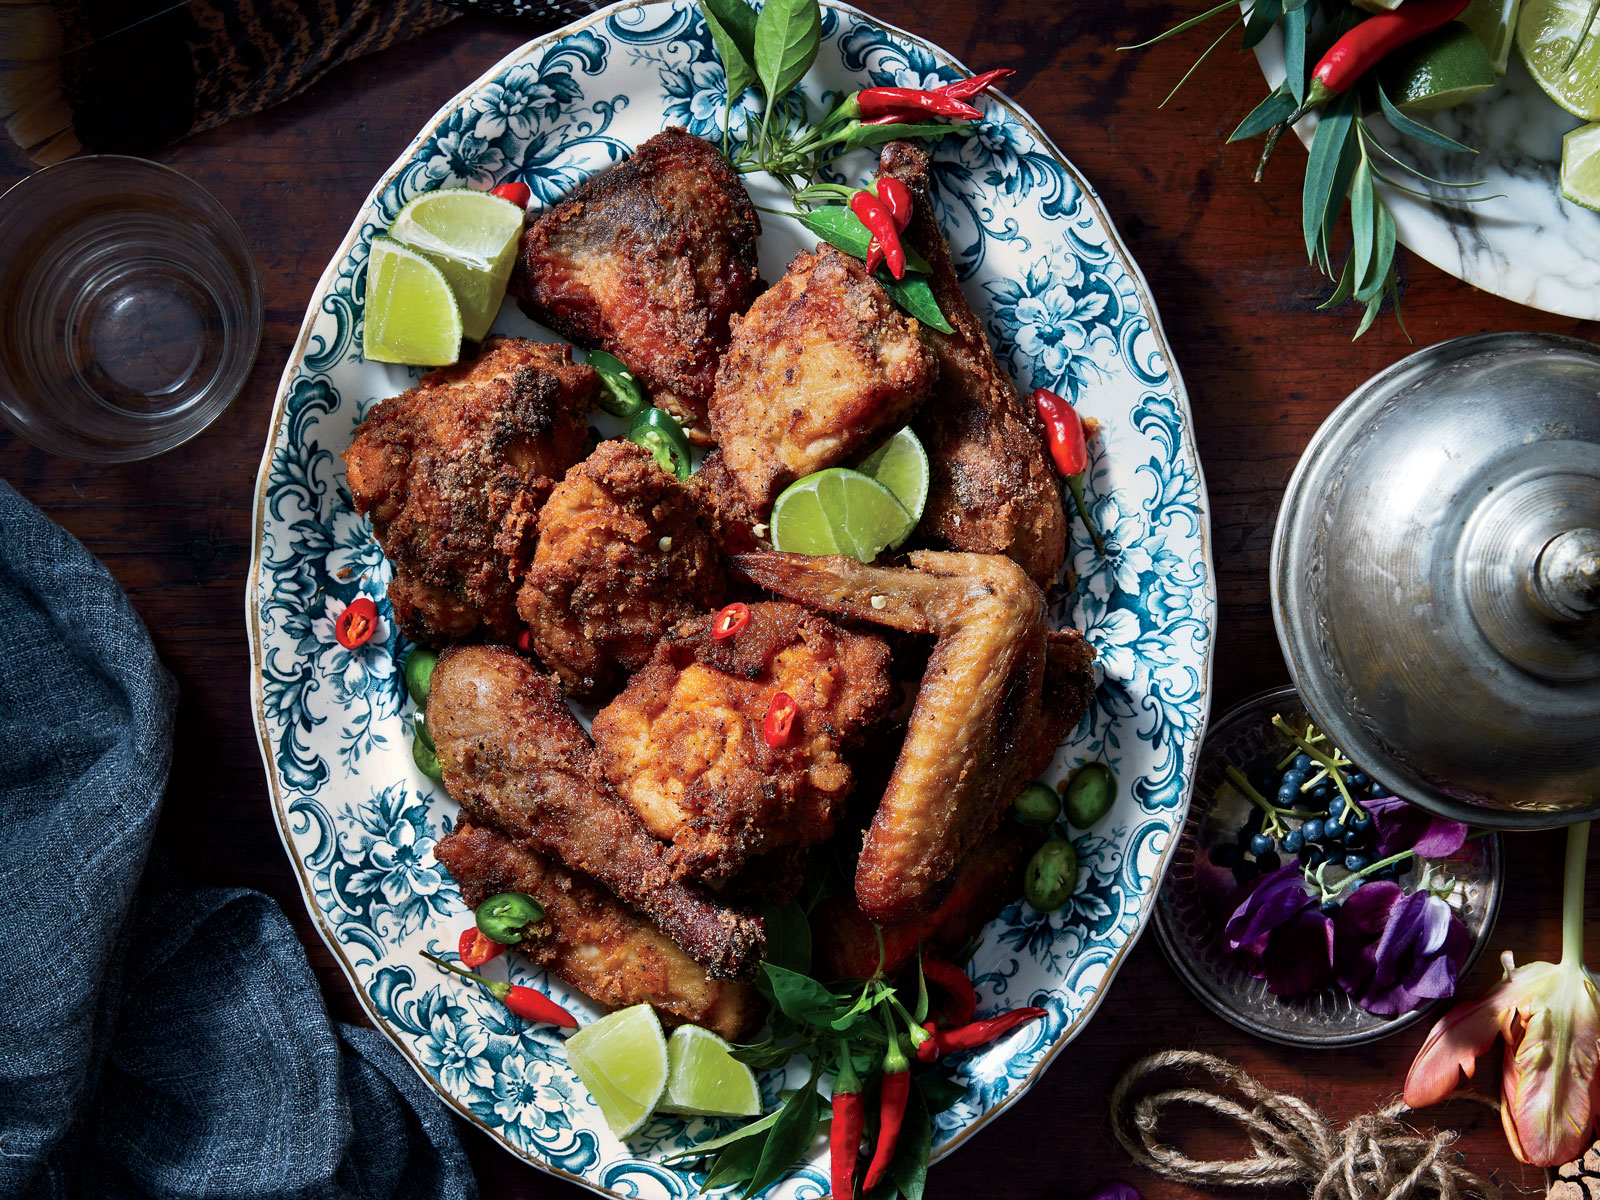 Afro-Spiced Fried Guinea Hen